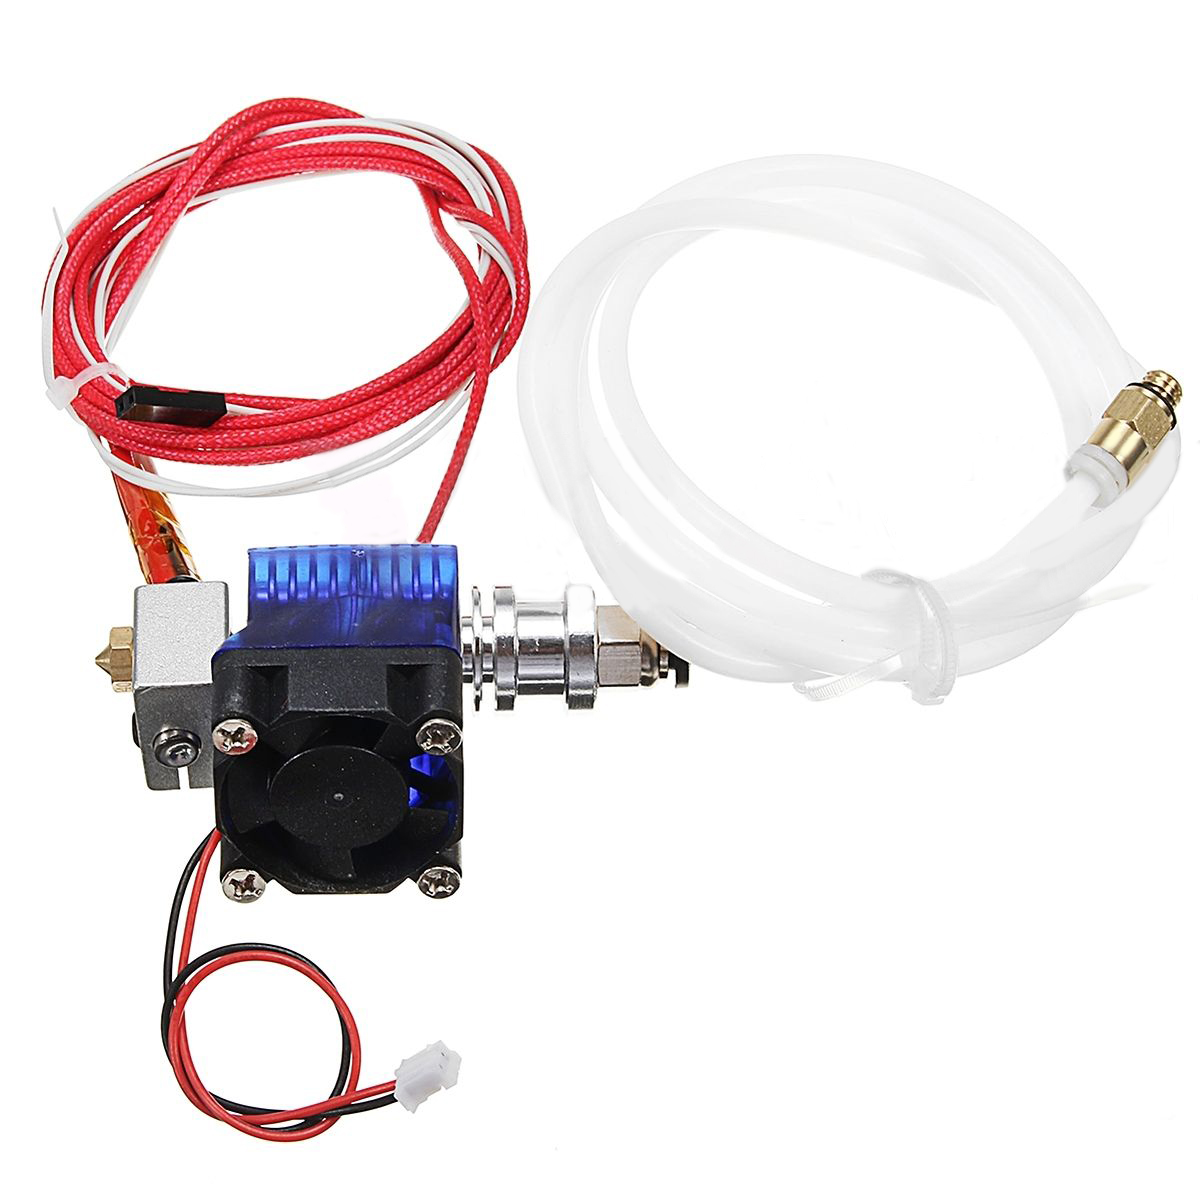 New 12V E3D V6 3D Printer Extruder J-head Hotend 0.4mm Nozzle For 1.75mm Filament Fan 3d printer accessory reprap j head mkiv mkv hotend nozzle wade bowden extruder for choice top quality free shipping